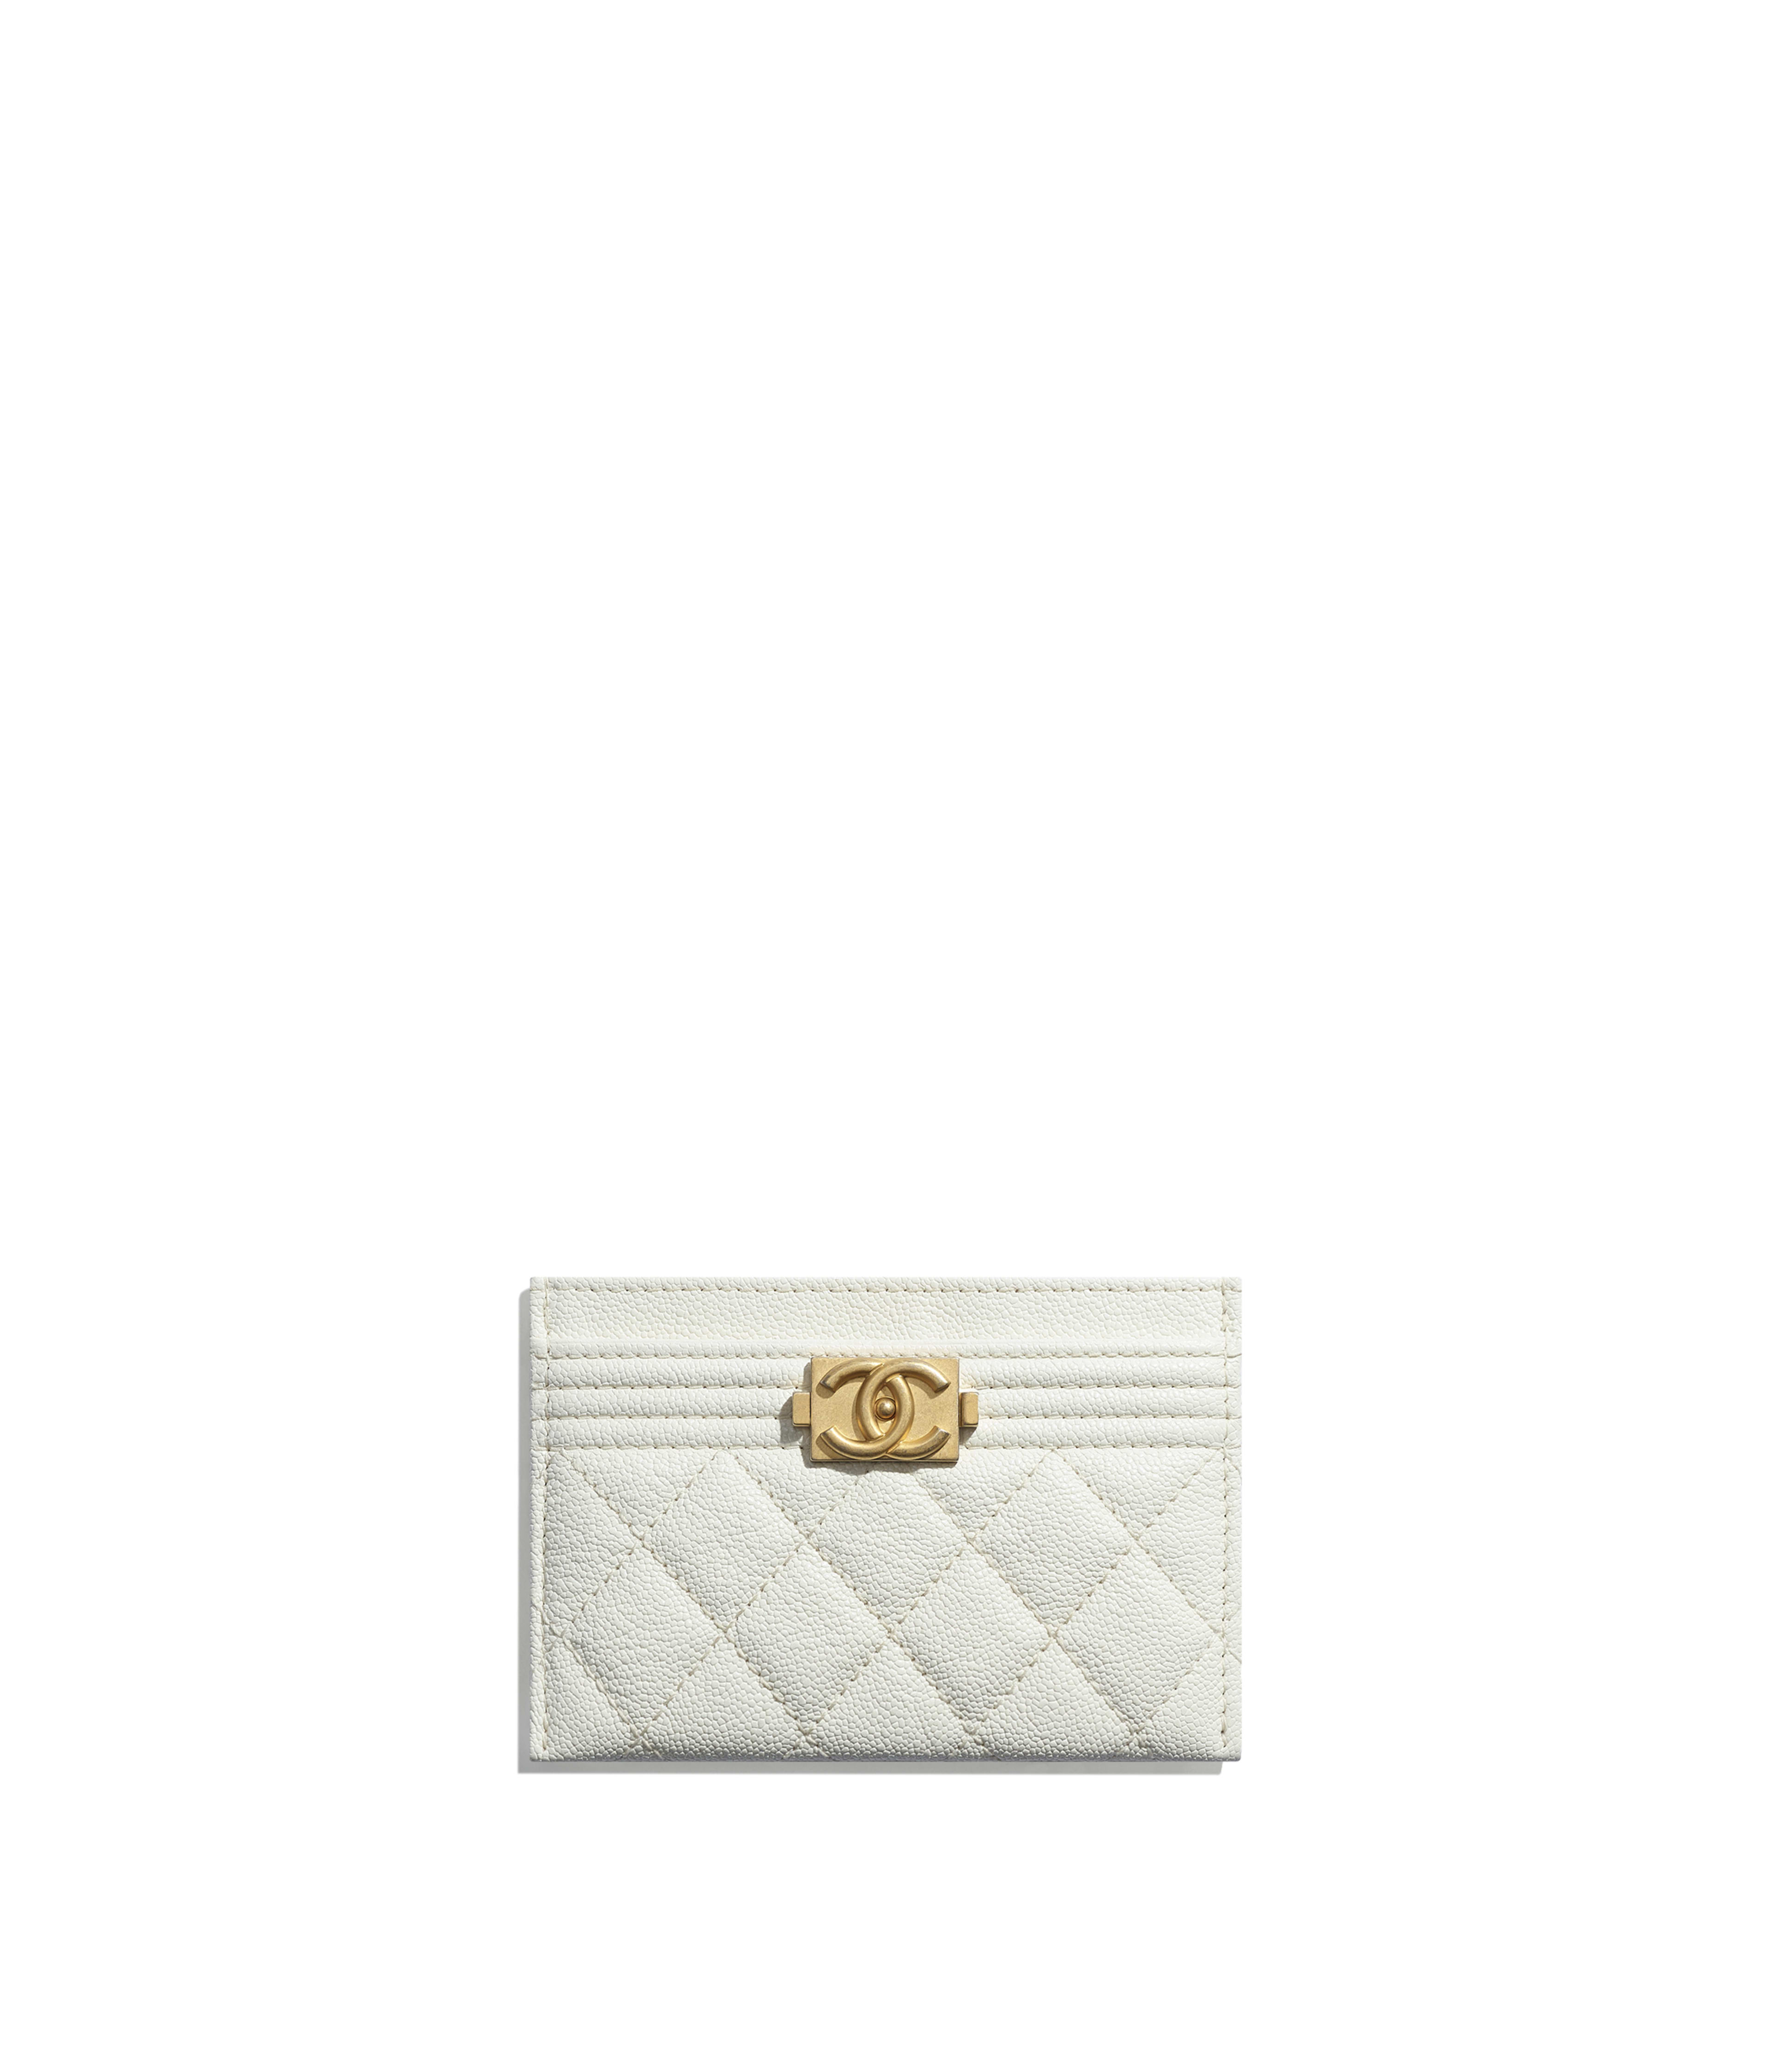 ccad5a697767 BOY CHANEL Card Holder Grained Calfskin & Gold-Tone Metal, White Ref.  A84431Y8362110601